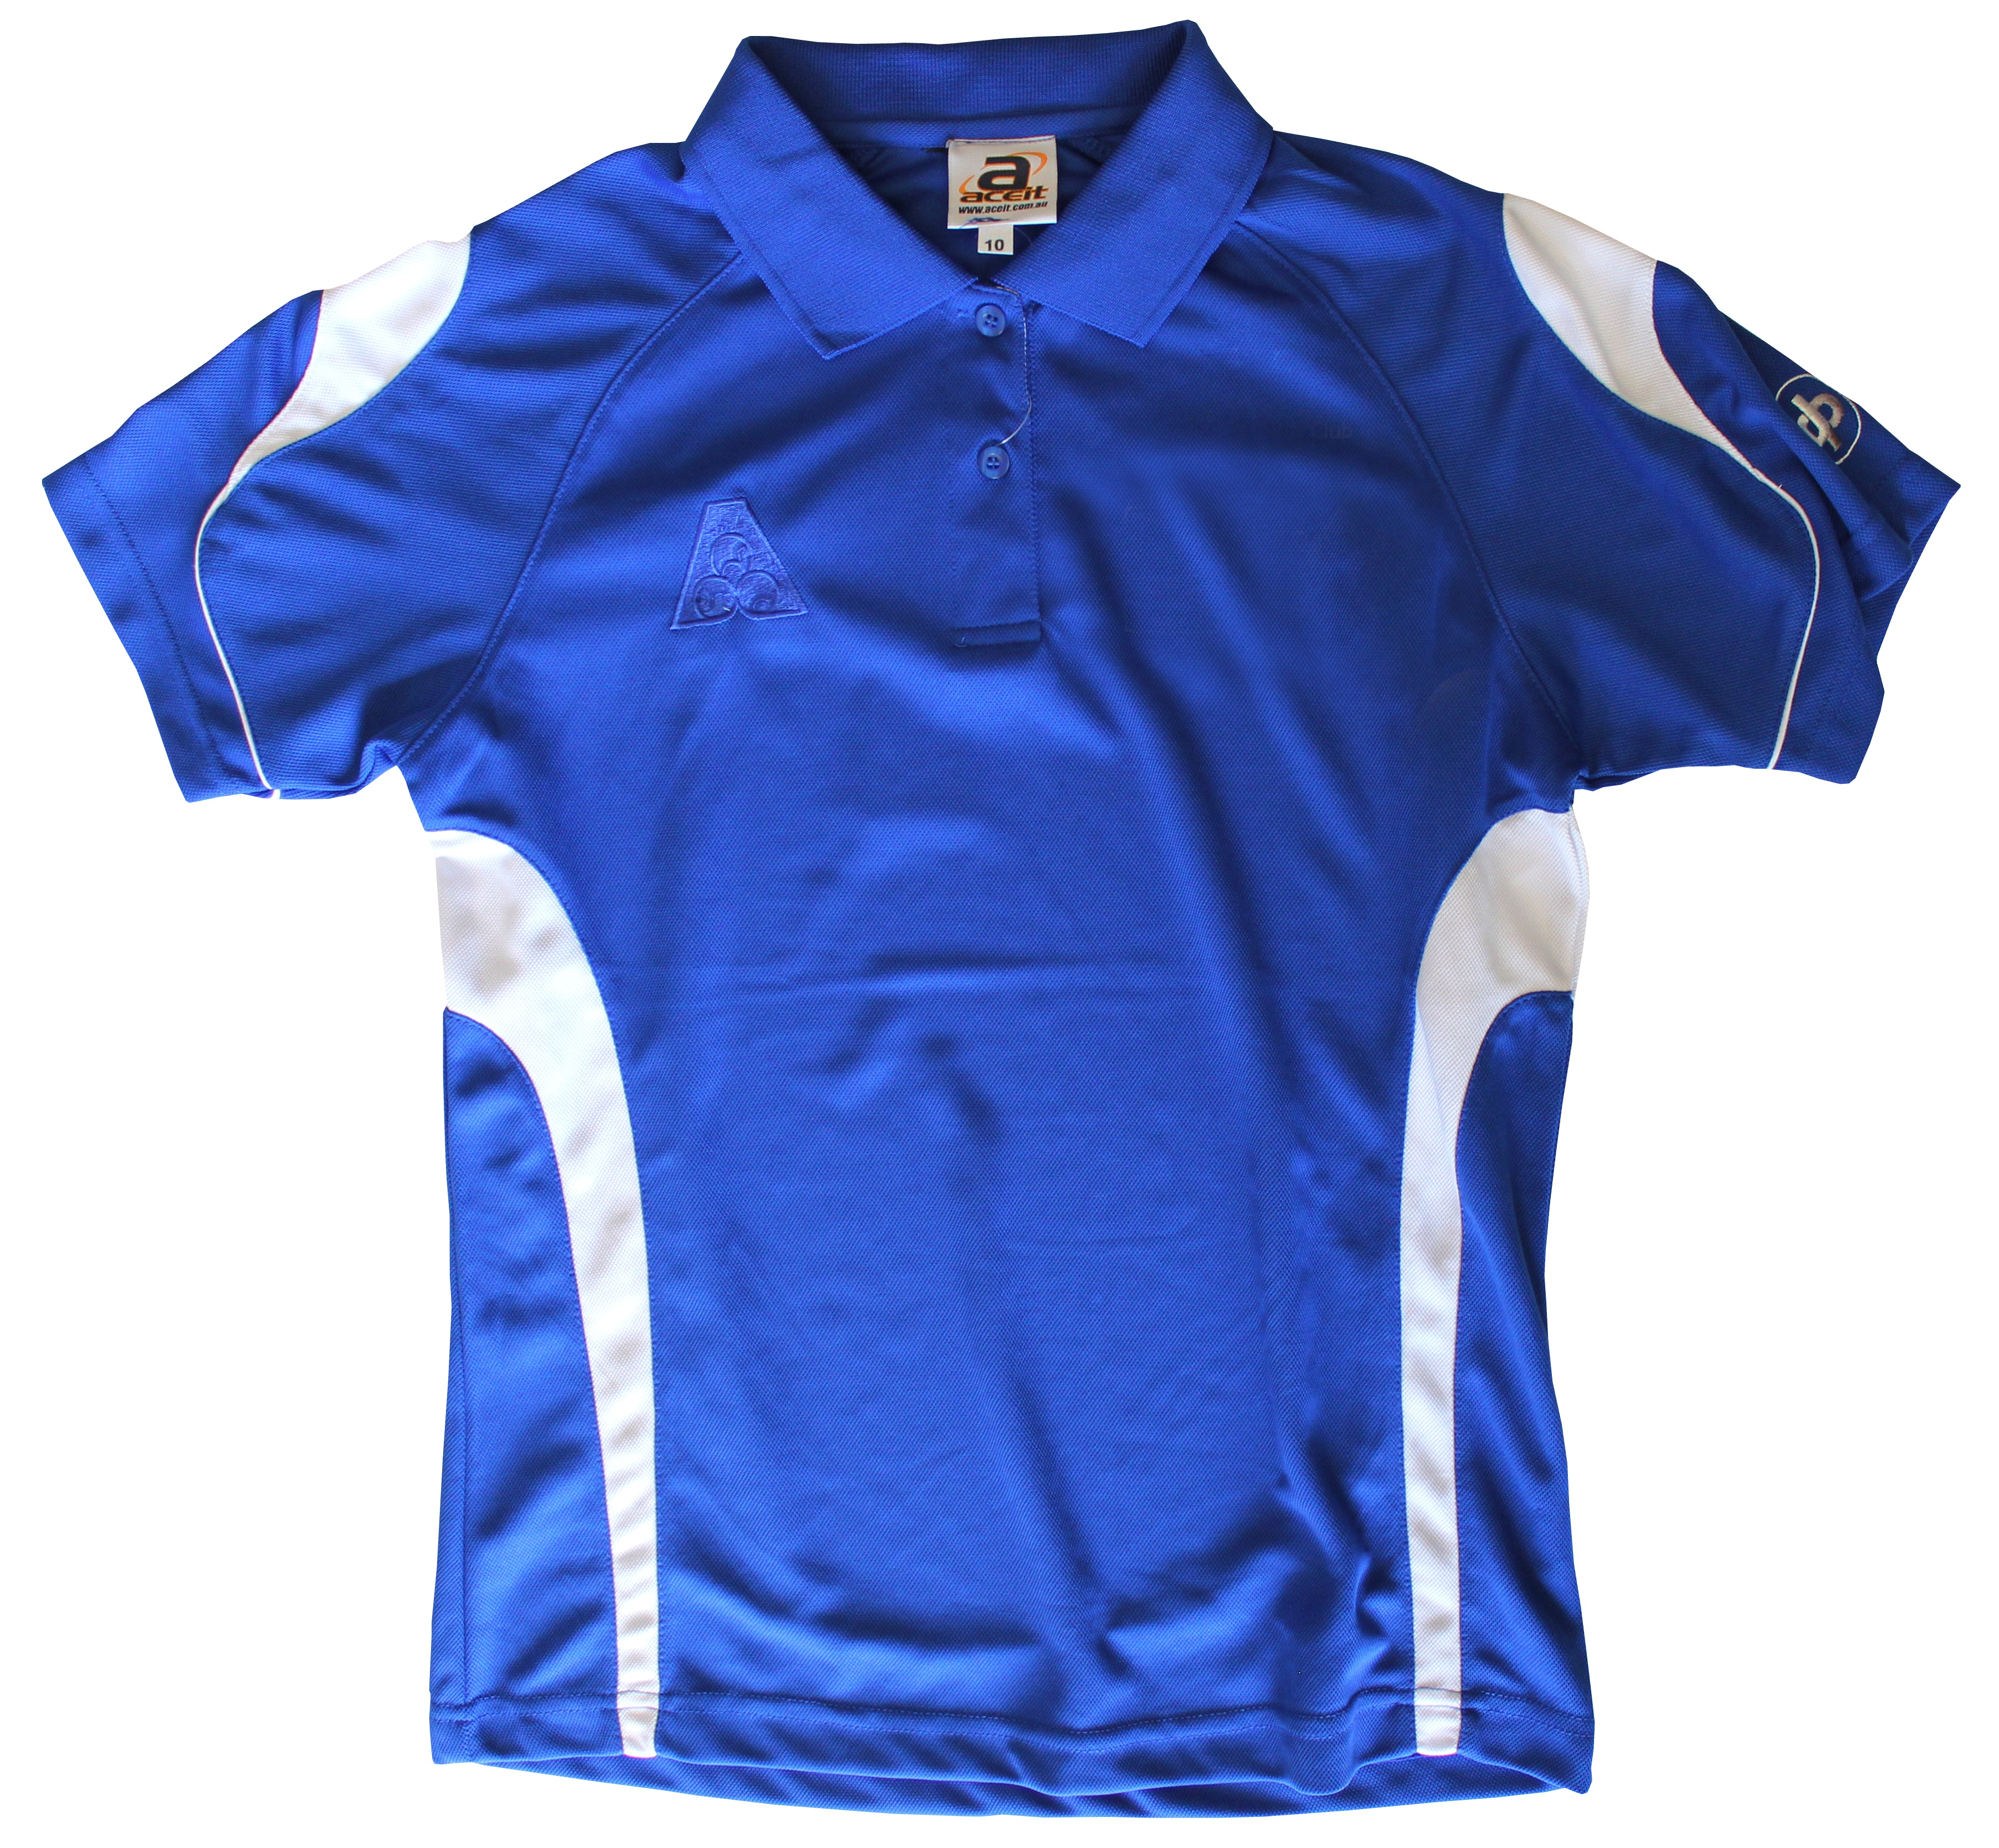 Find great deals on eBay for ladies bowling shirt. Shop with confidence.